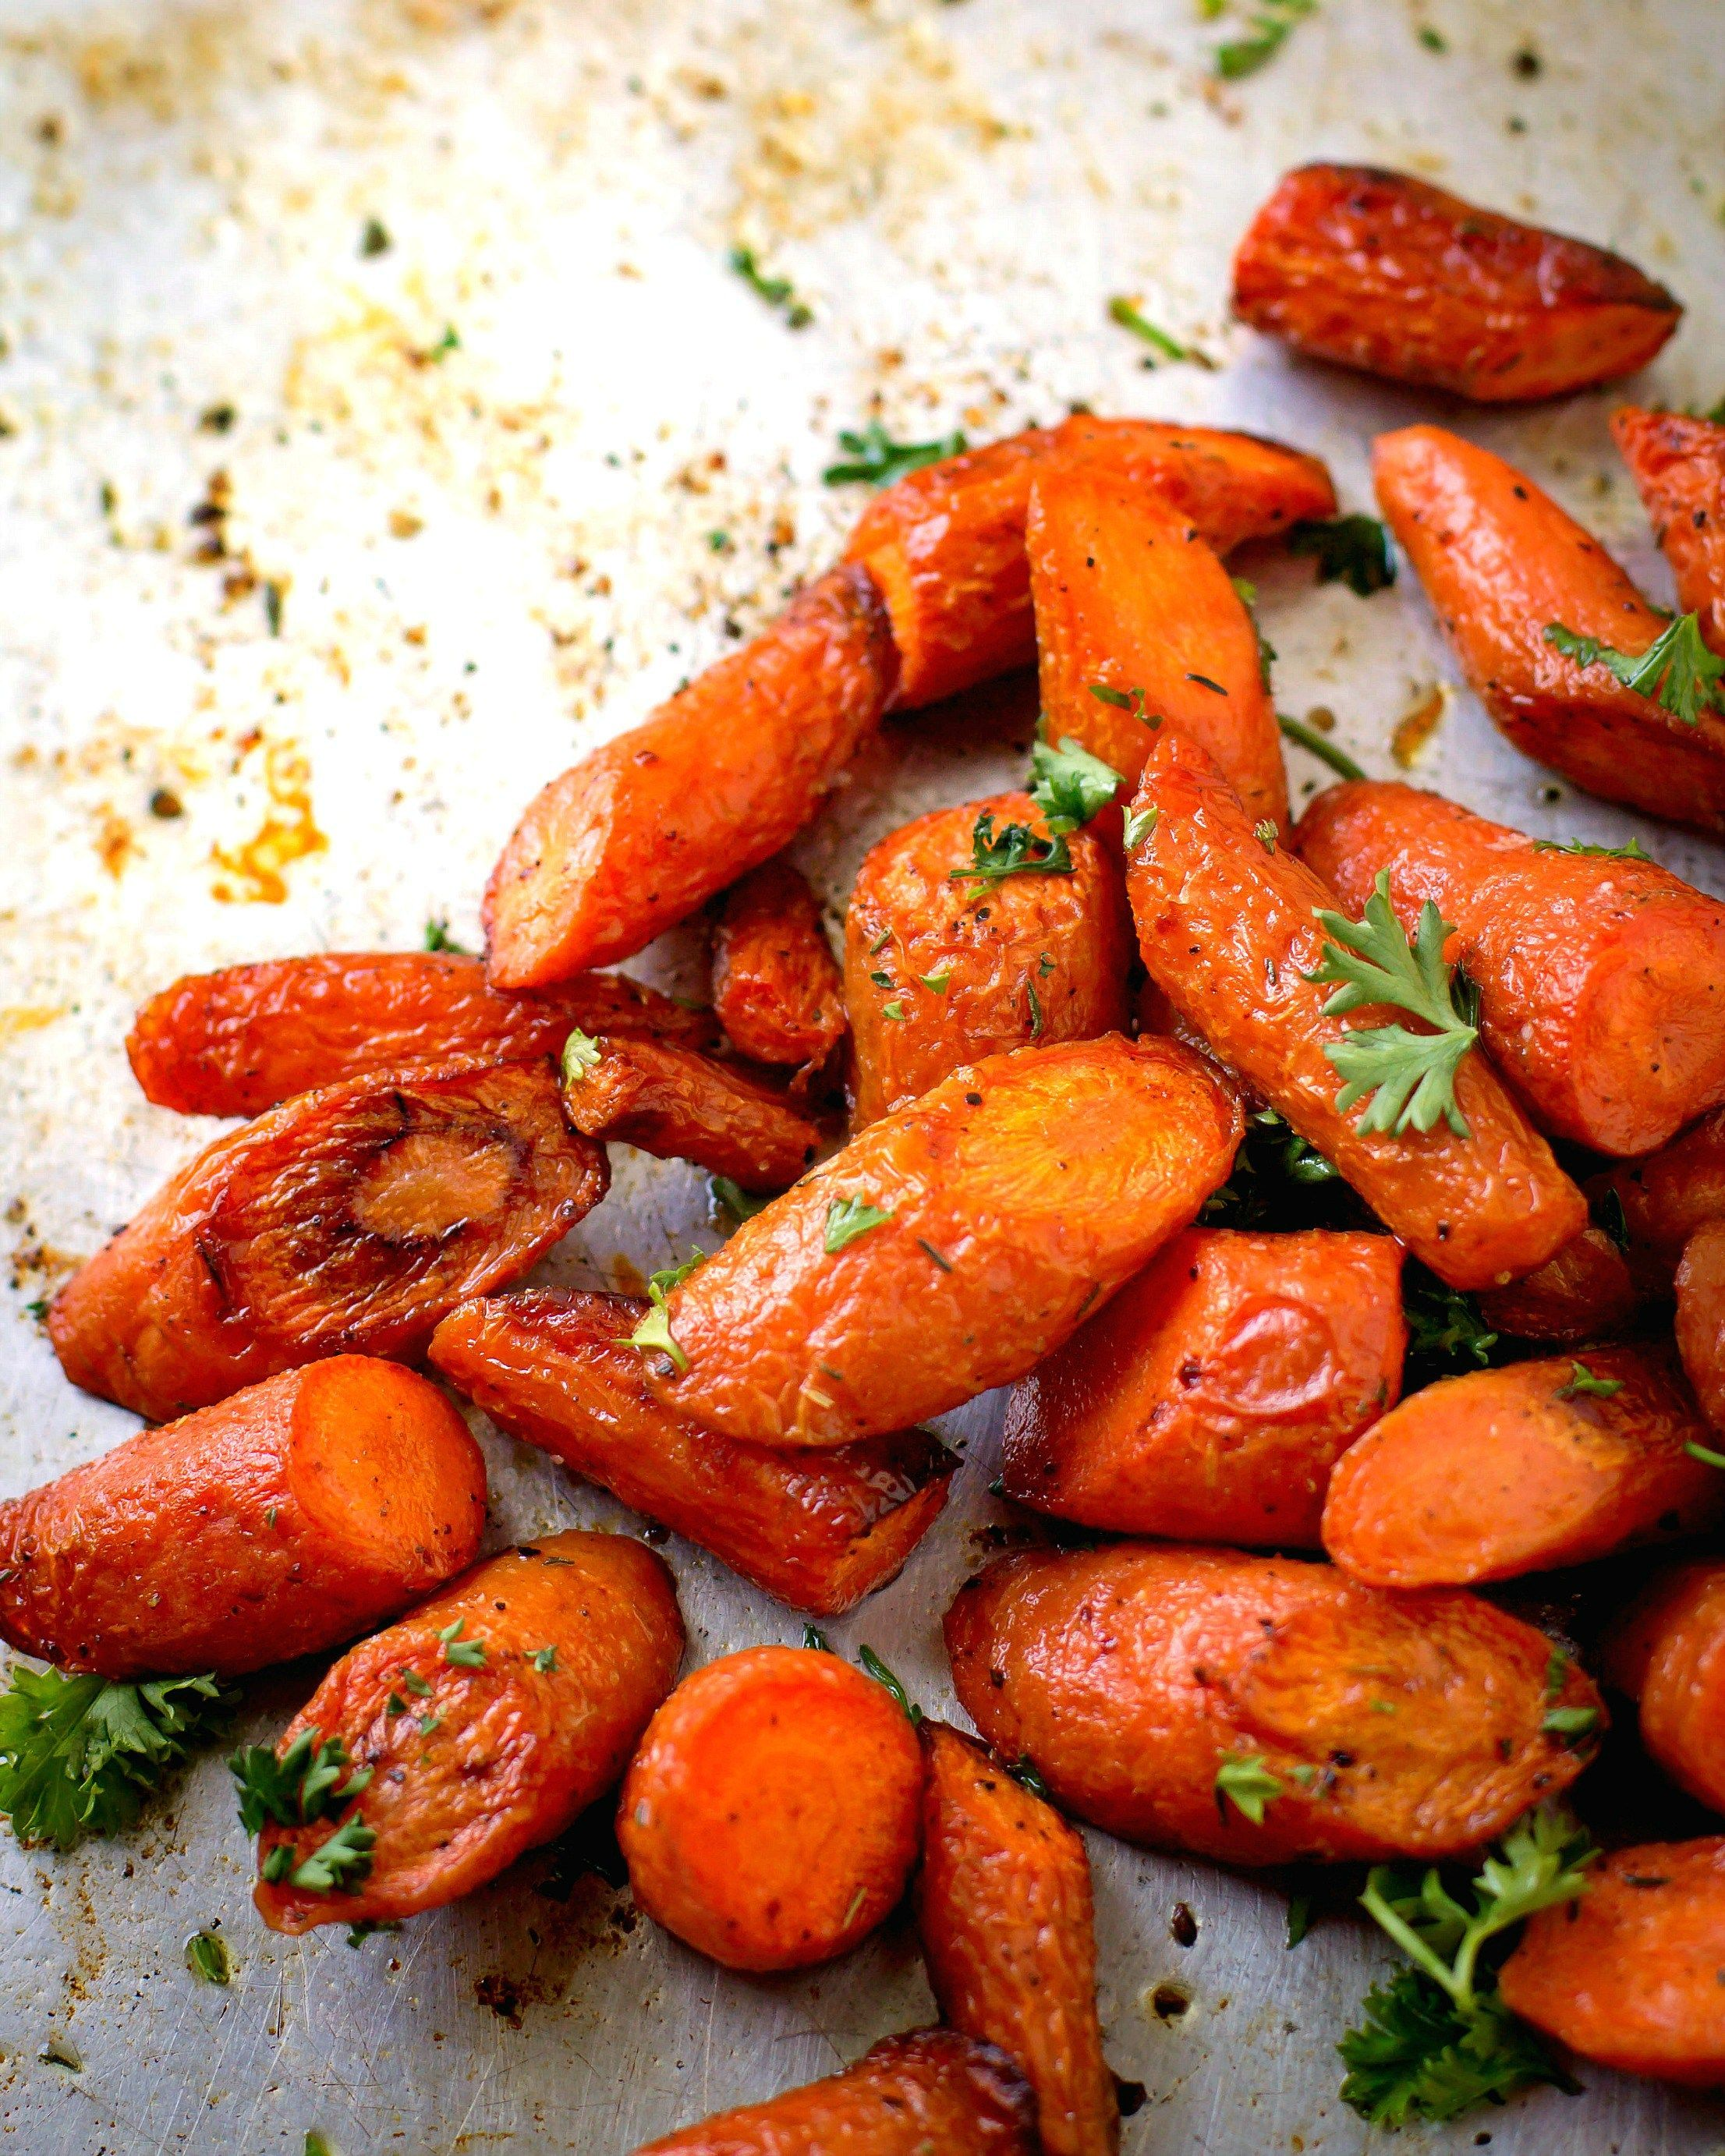 roasted root vegetables with balsamic vinegar